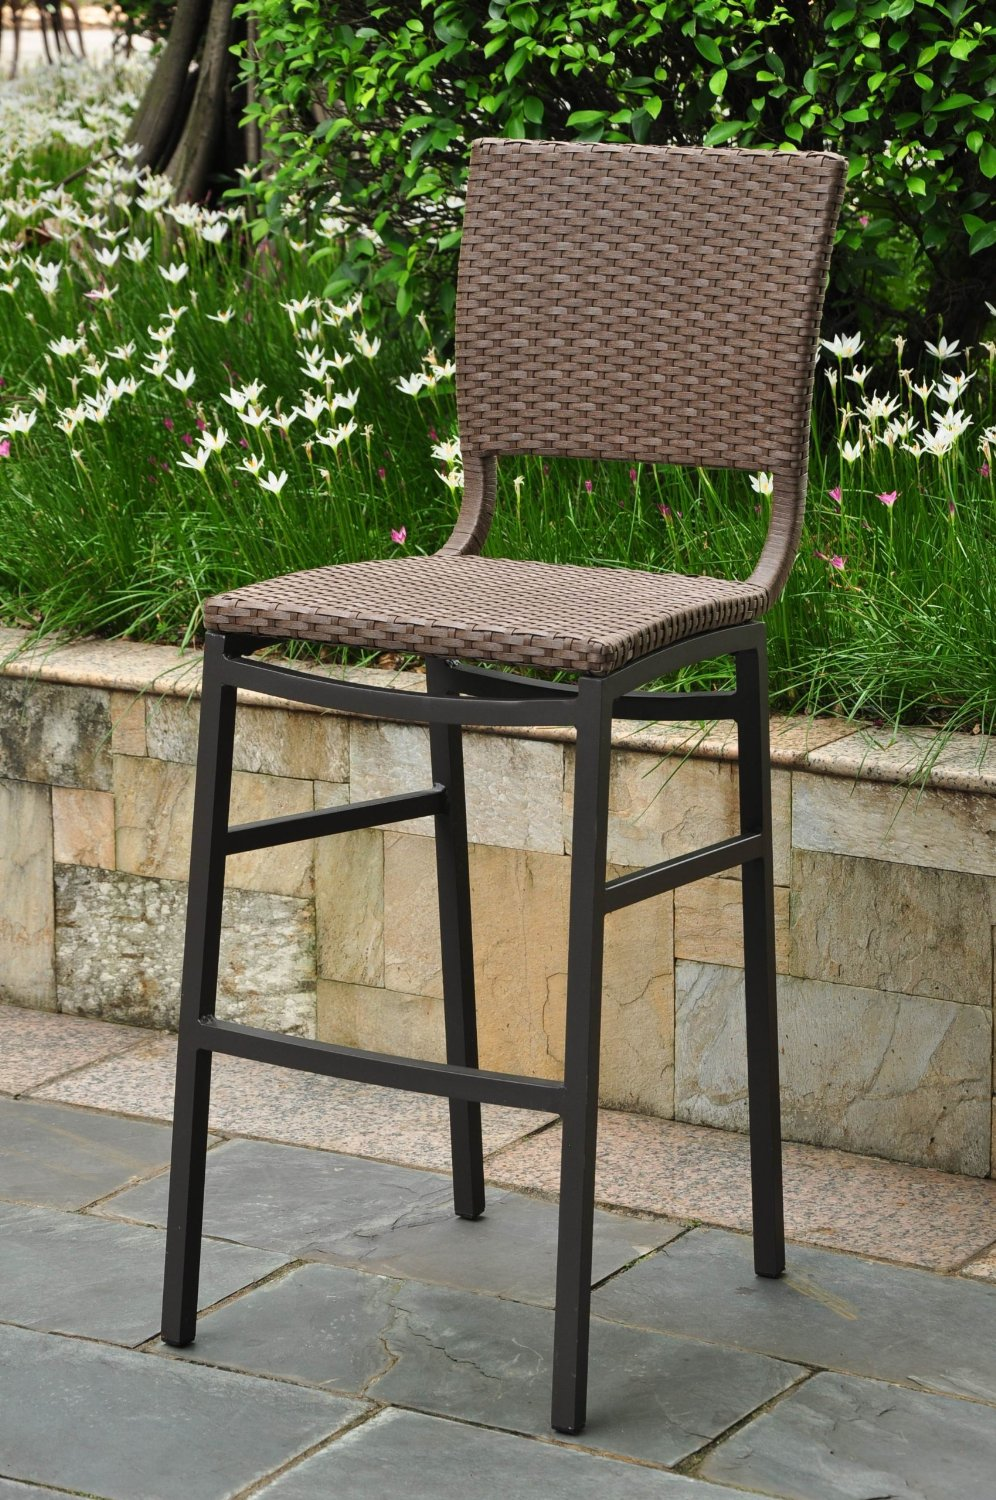 Reviewing the Best Outdoor Bar Stools Outdoor Bar : barcelonaresinwickeroutdoorstools from outdoorbar.net size 996 x 1500 jpeg 397kB